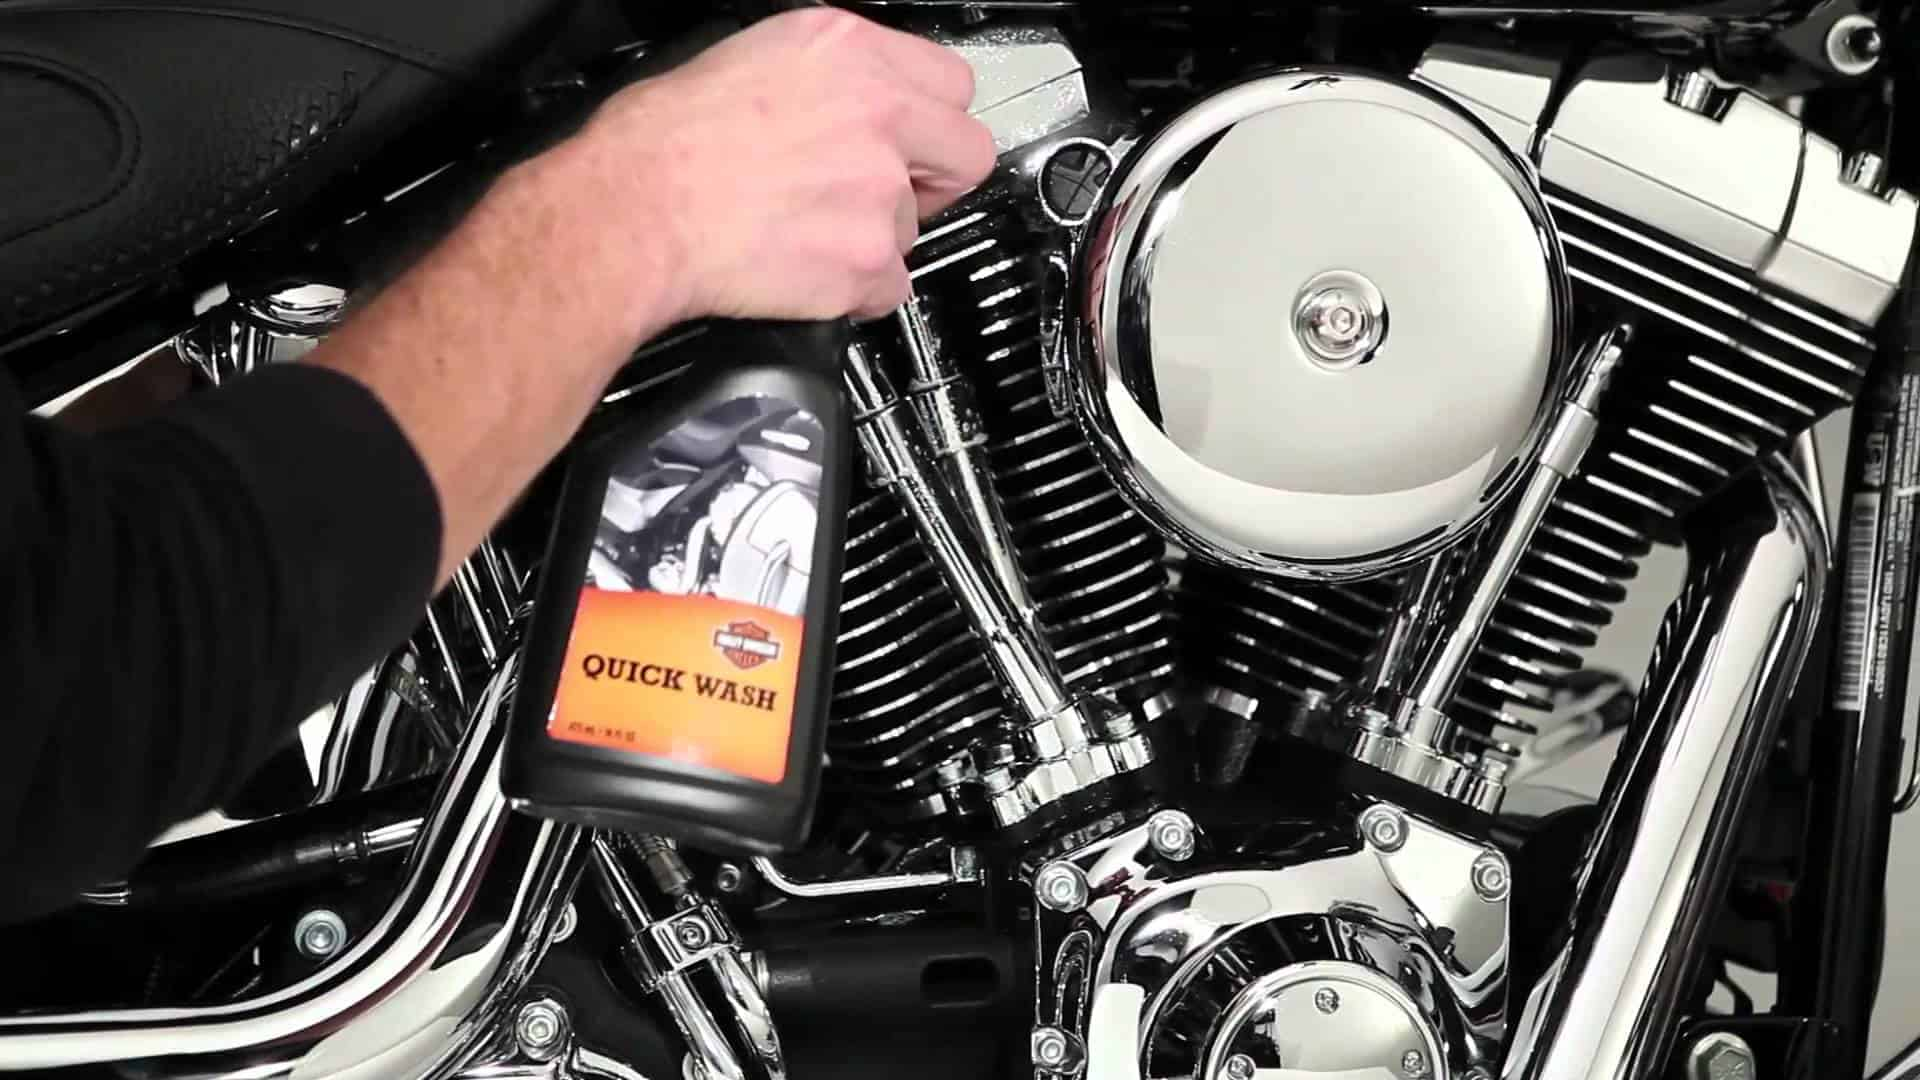 How to Wash a Harley: Bring your Bike Back to Showroom Quality